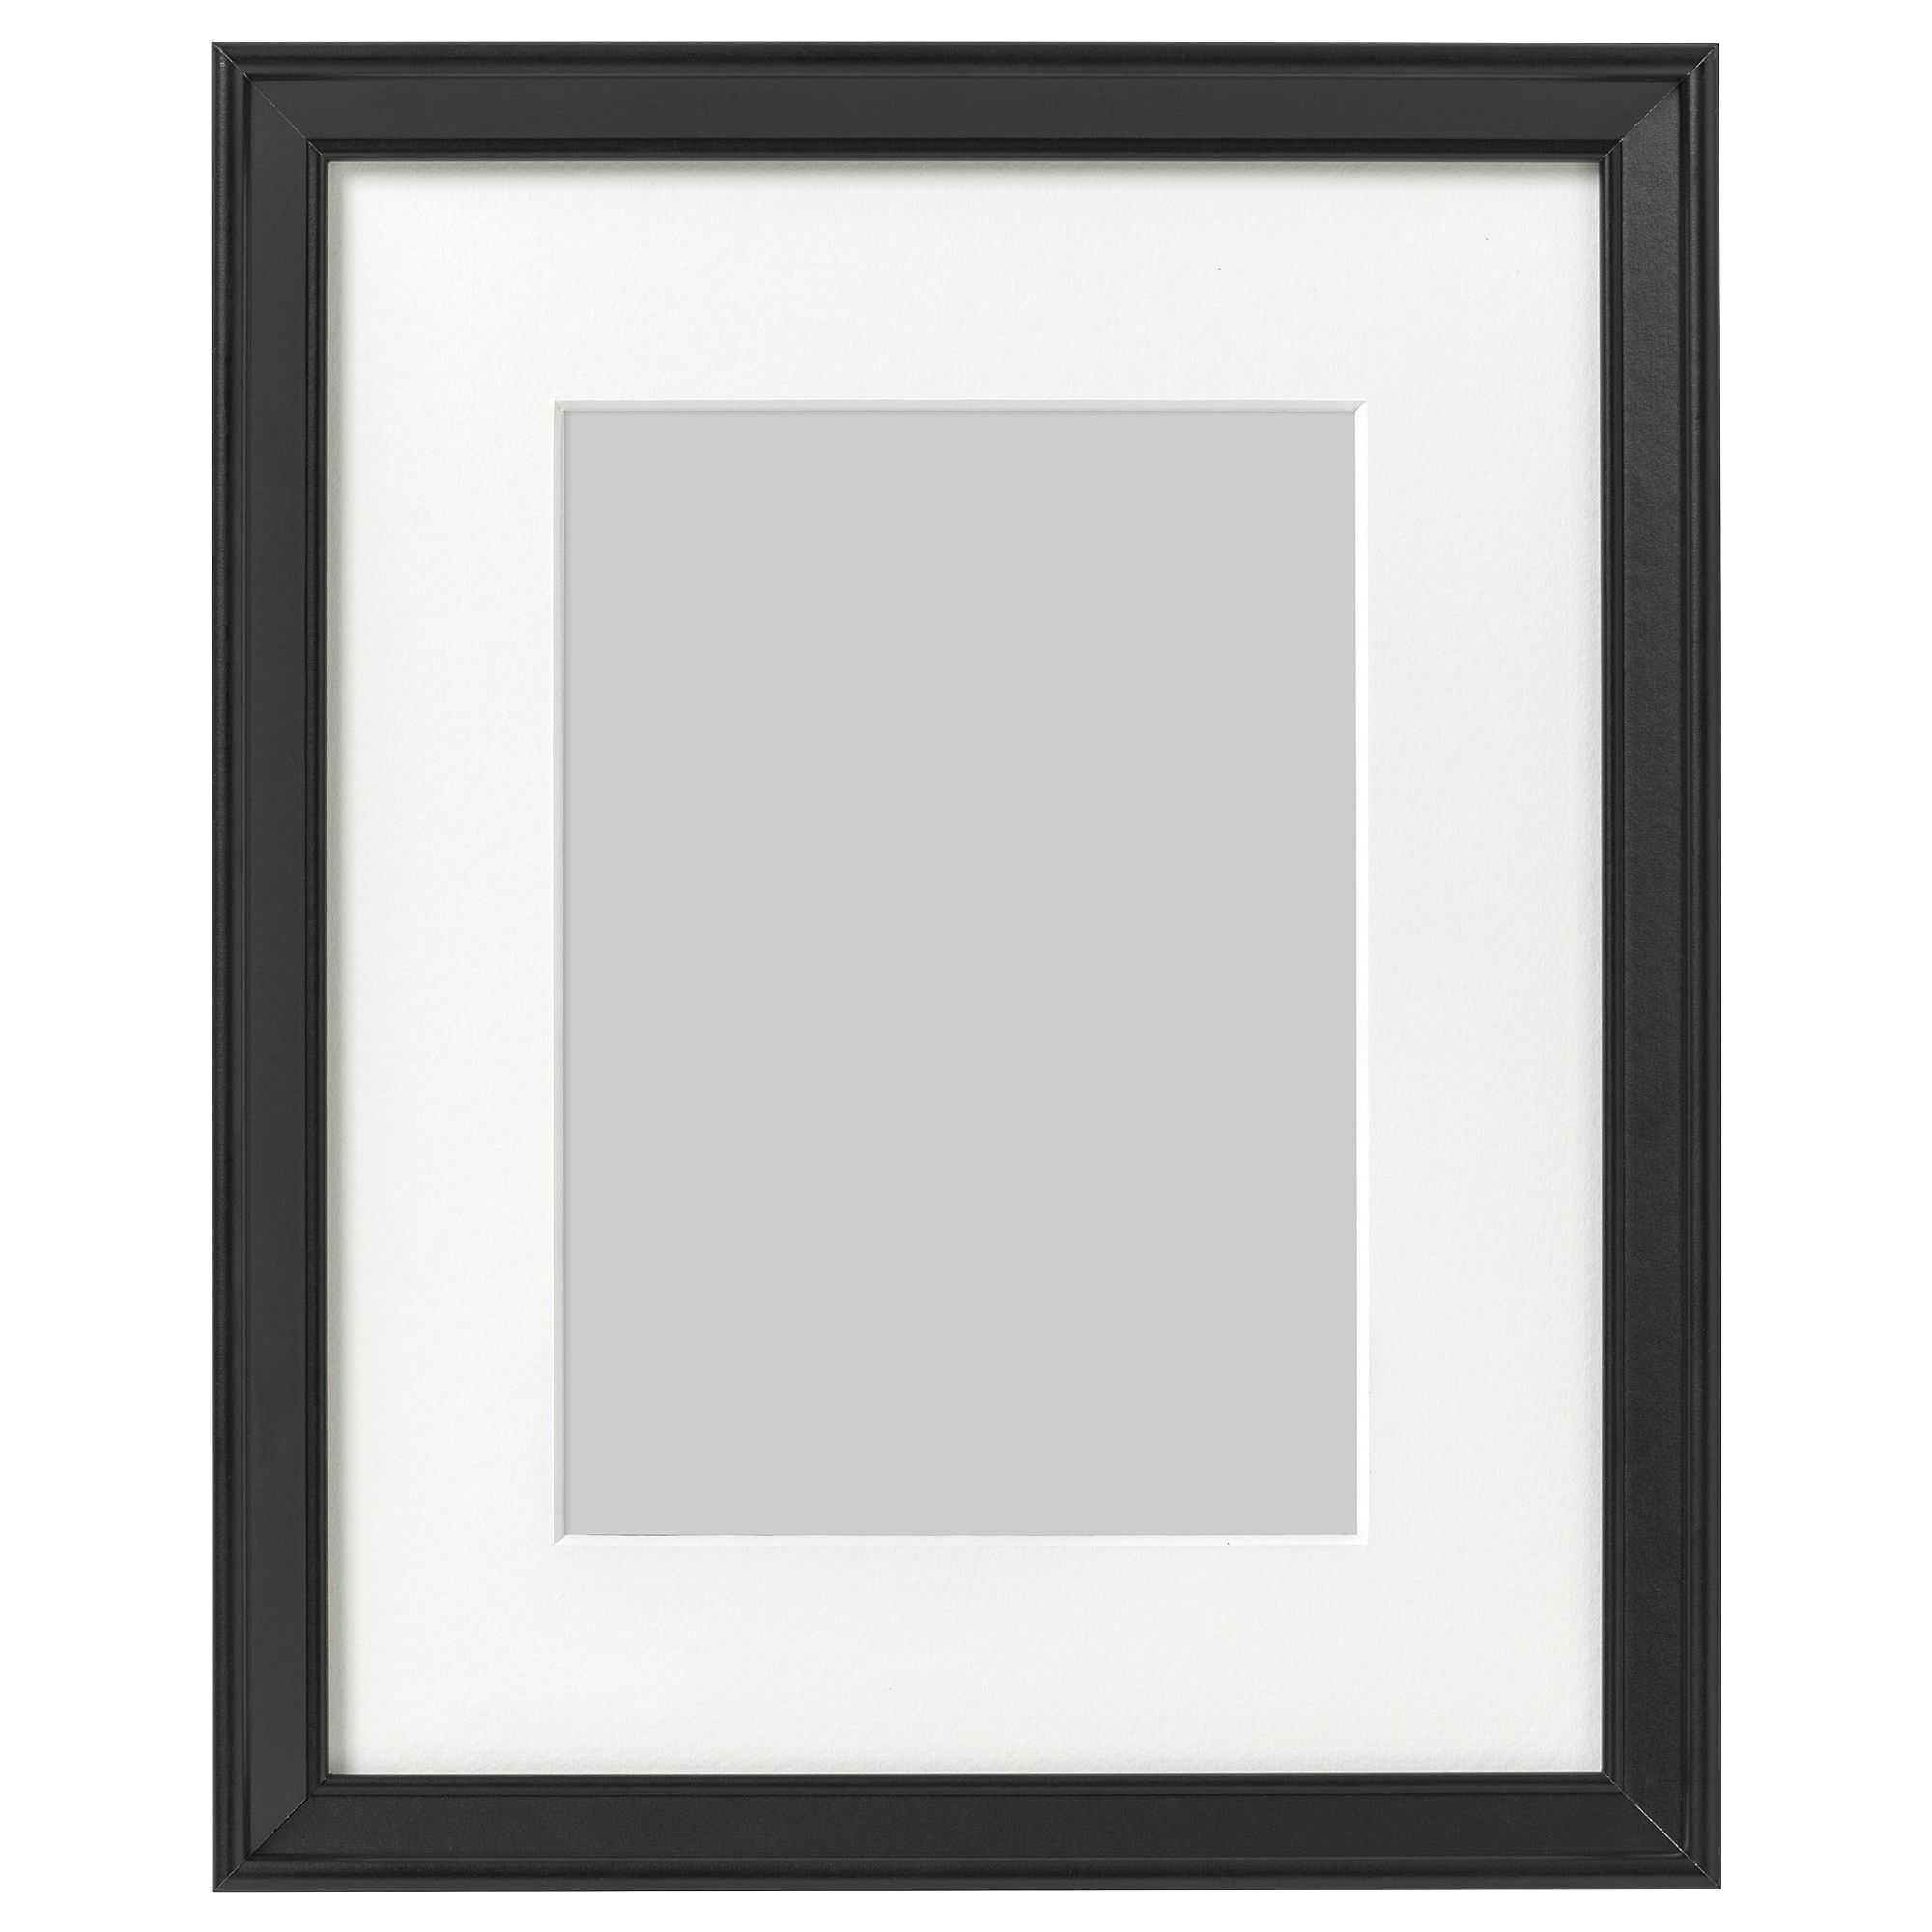 Ikea Knoppang Black Frame Picture Wall Staircase Unique Picture Frames Frames On Wall